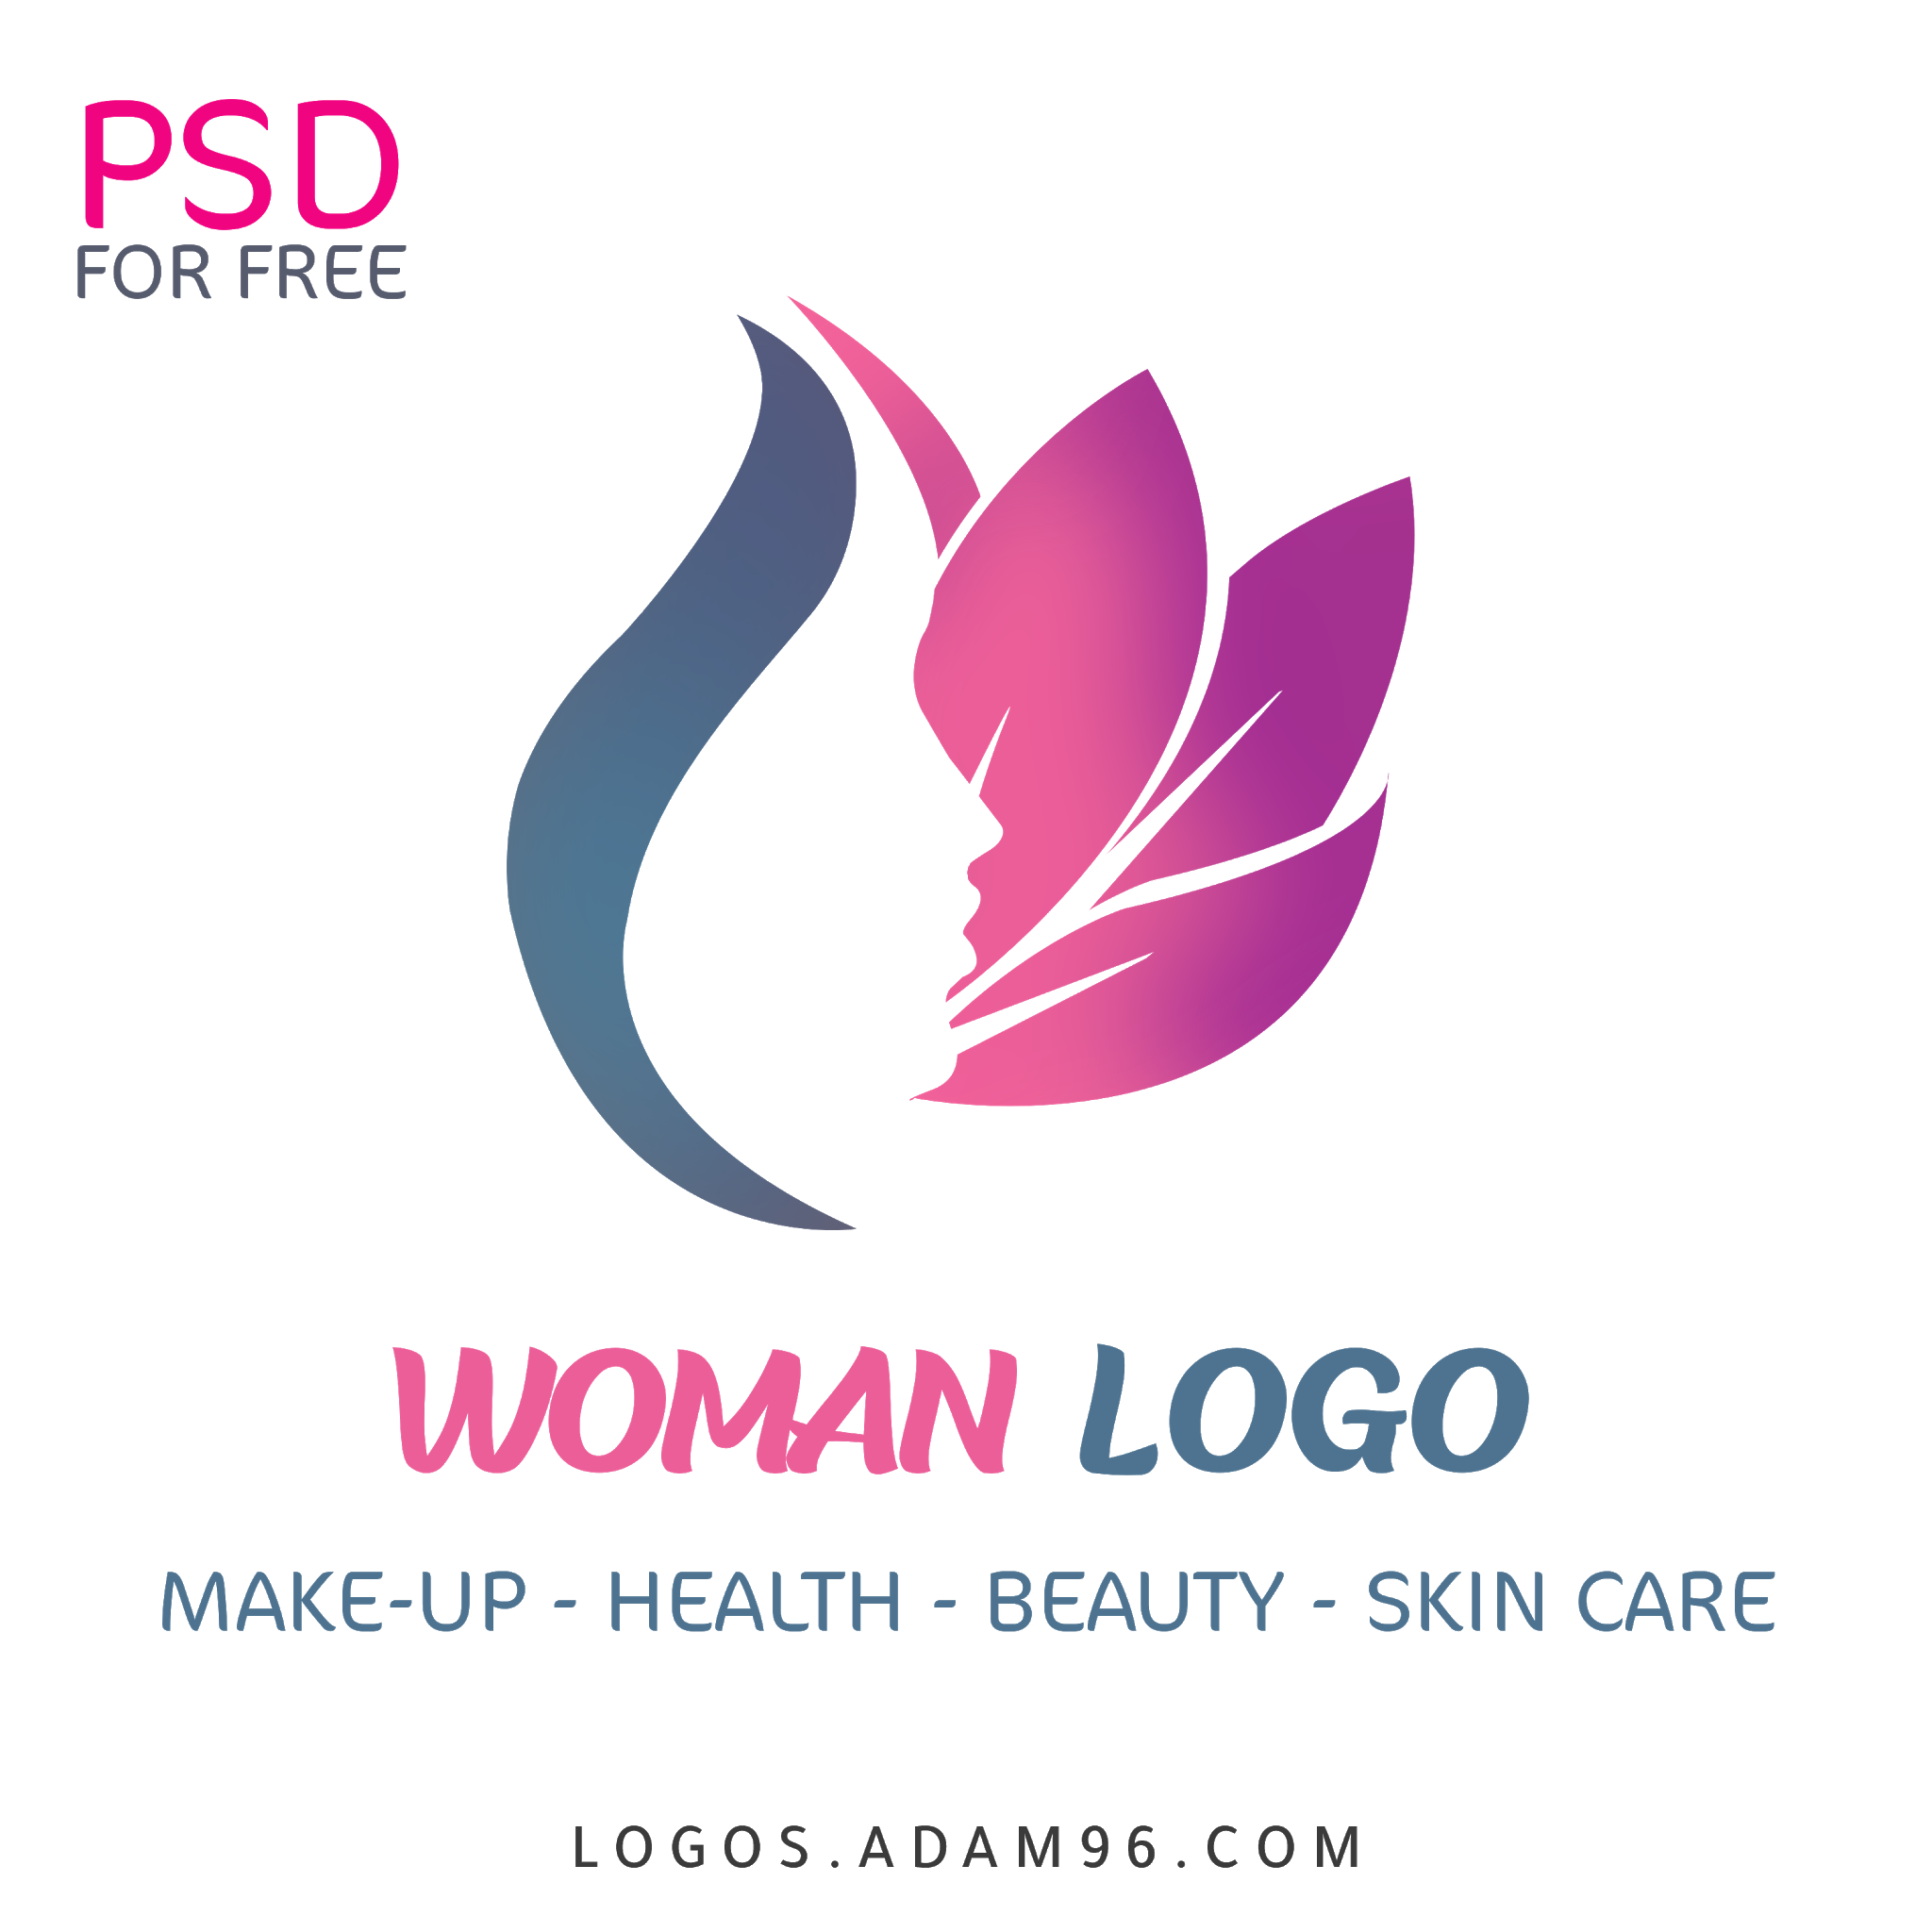 Download Logo Without Women Care Rights - Logo For Free PSD